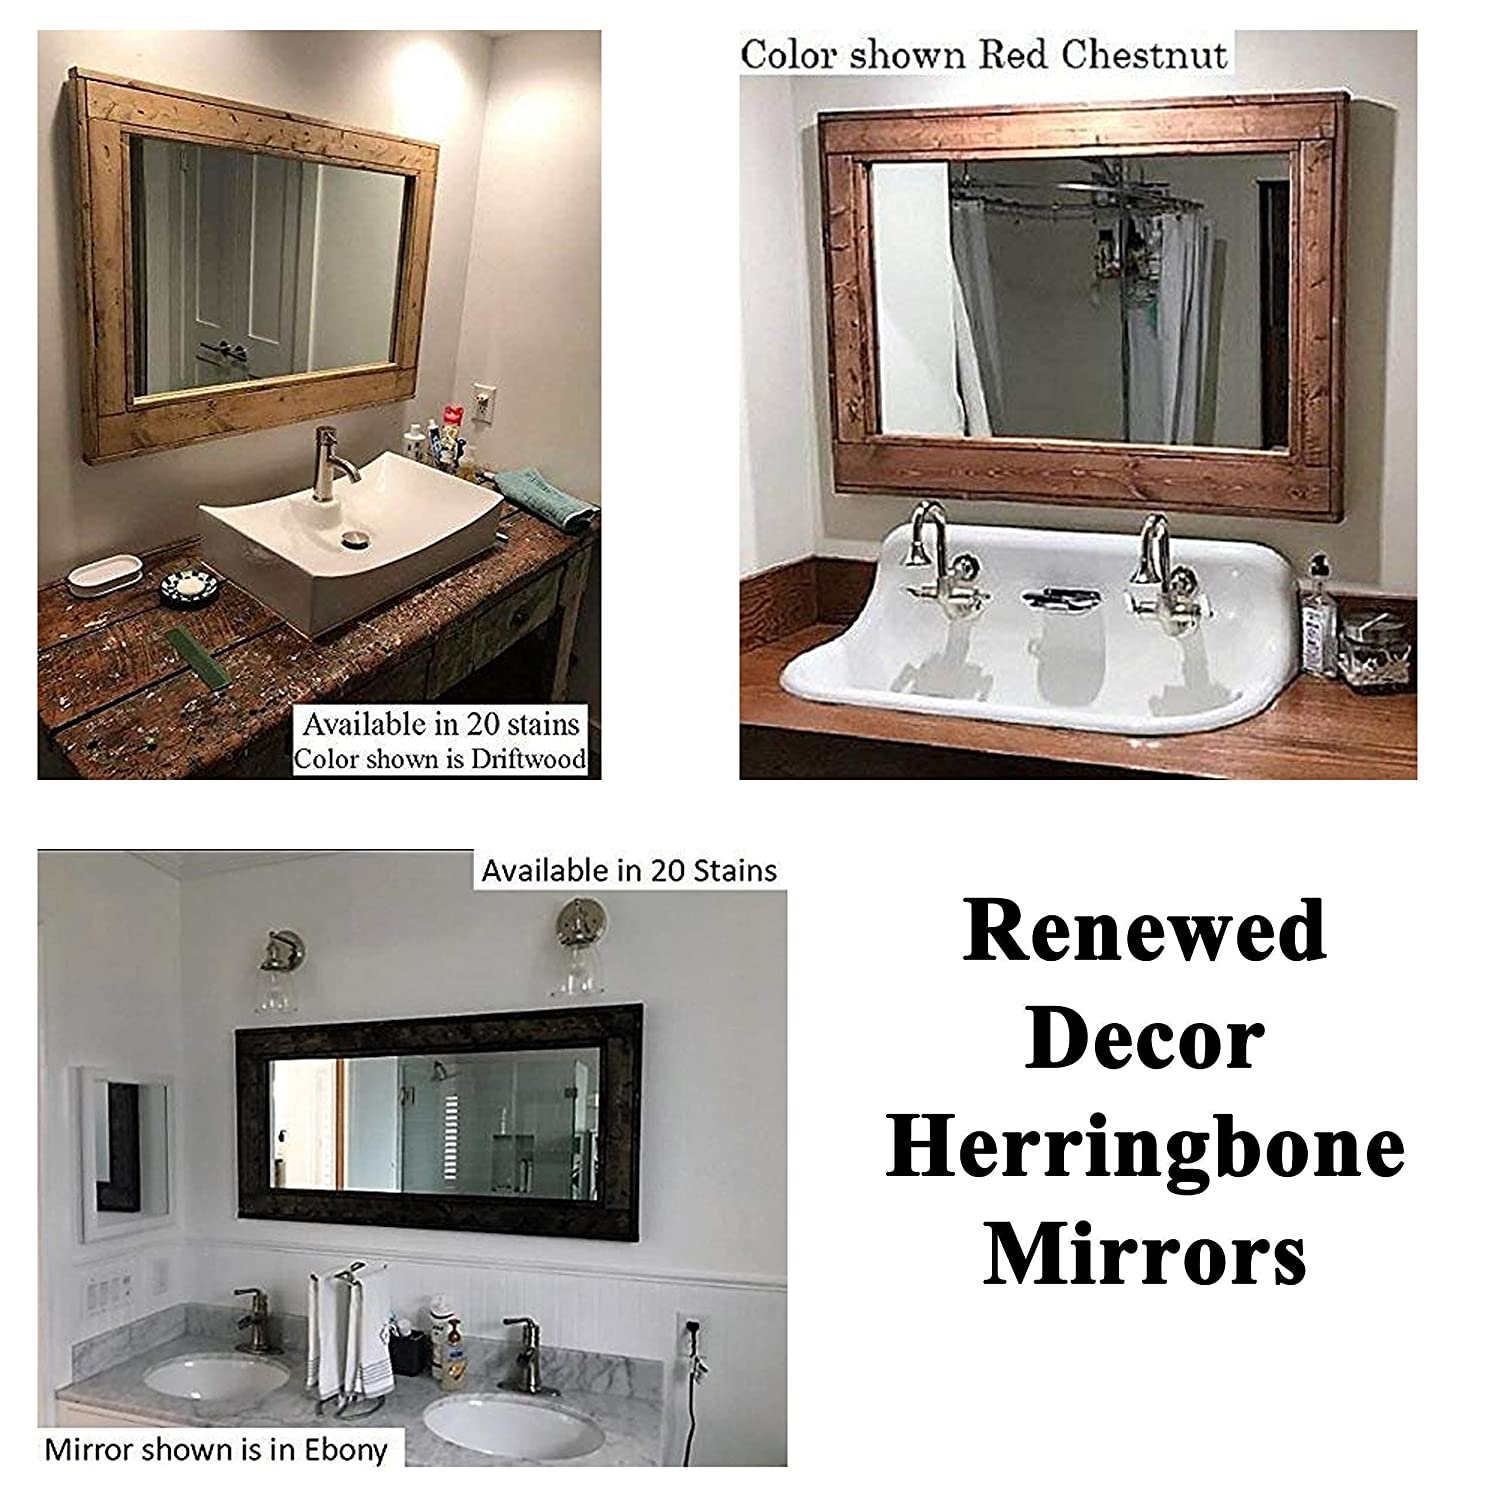 Amazon Herringbone Reclaimed Wood Framed Mirror Available in 4